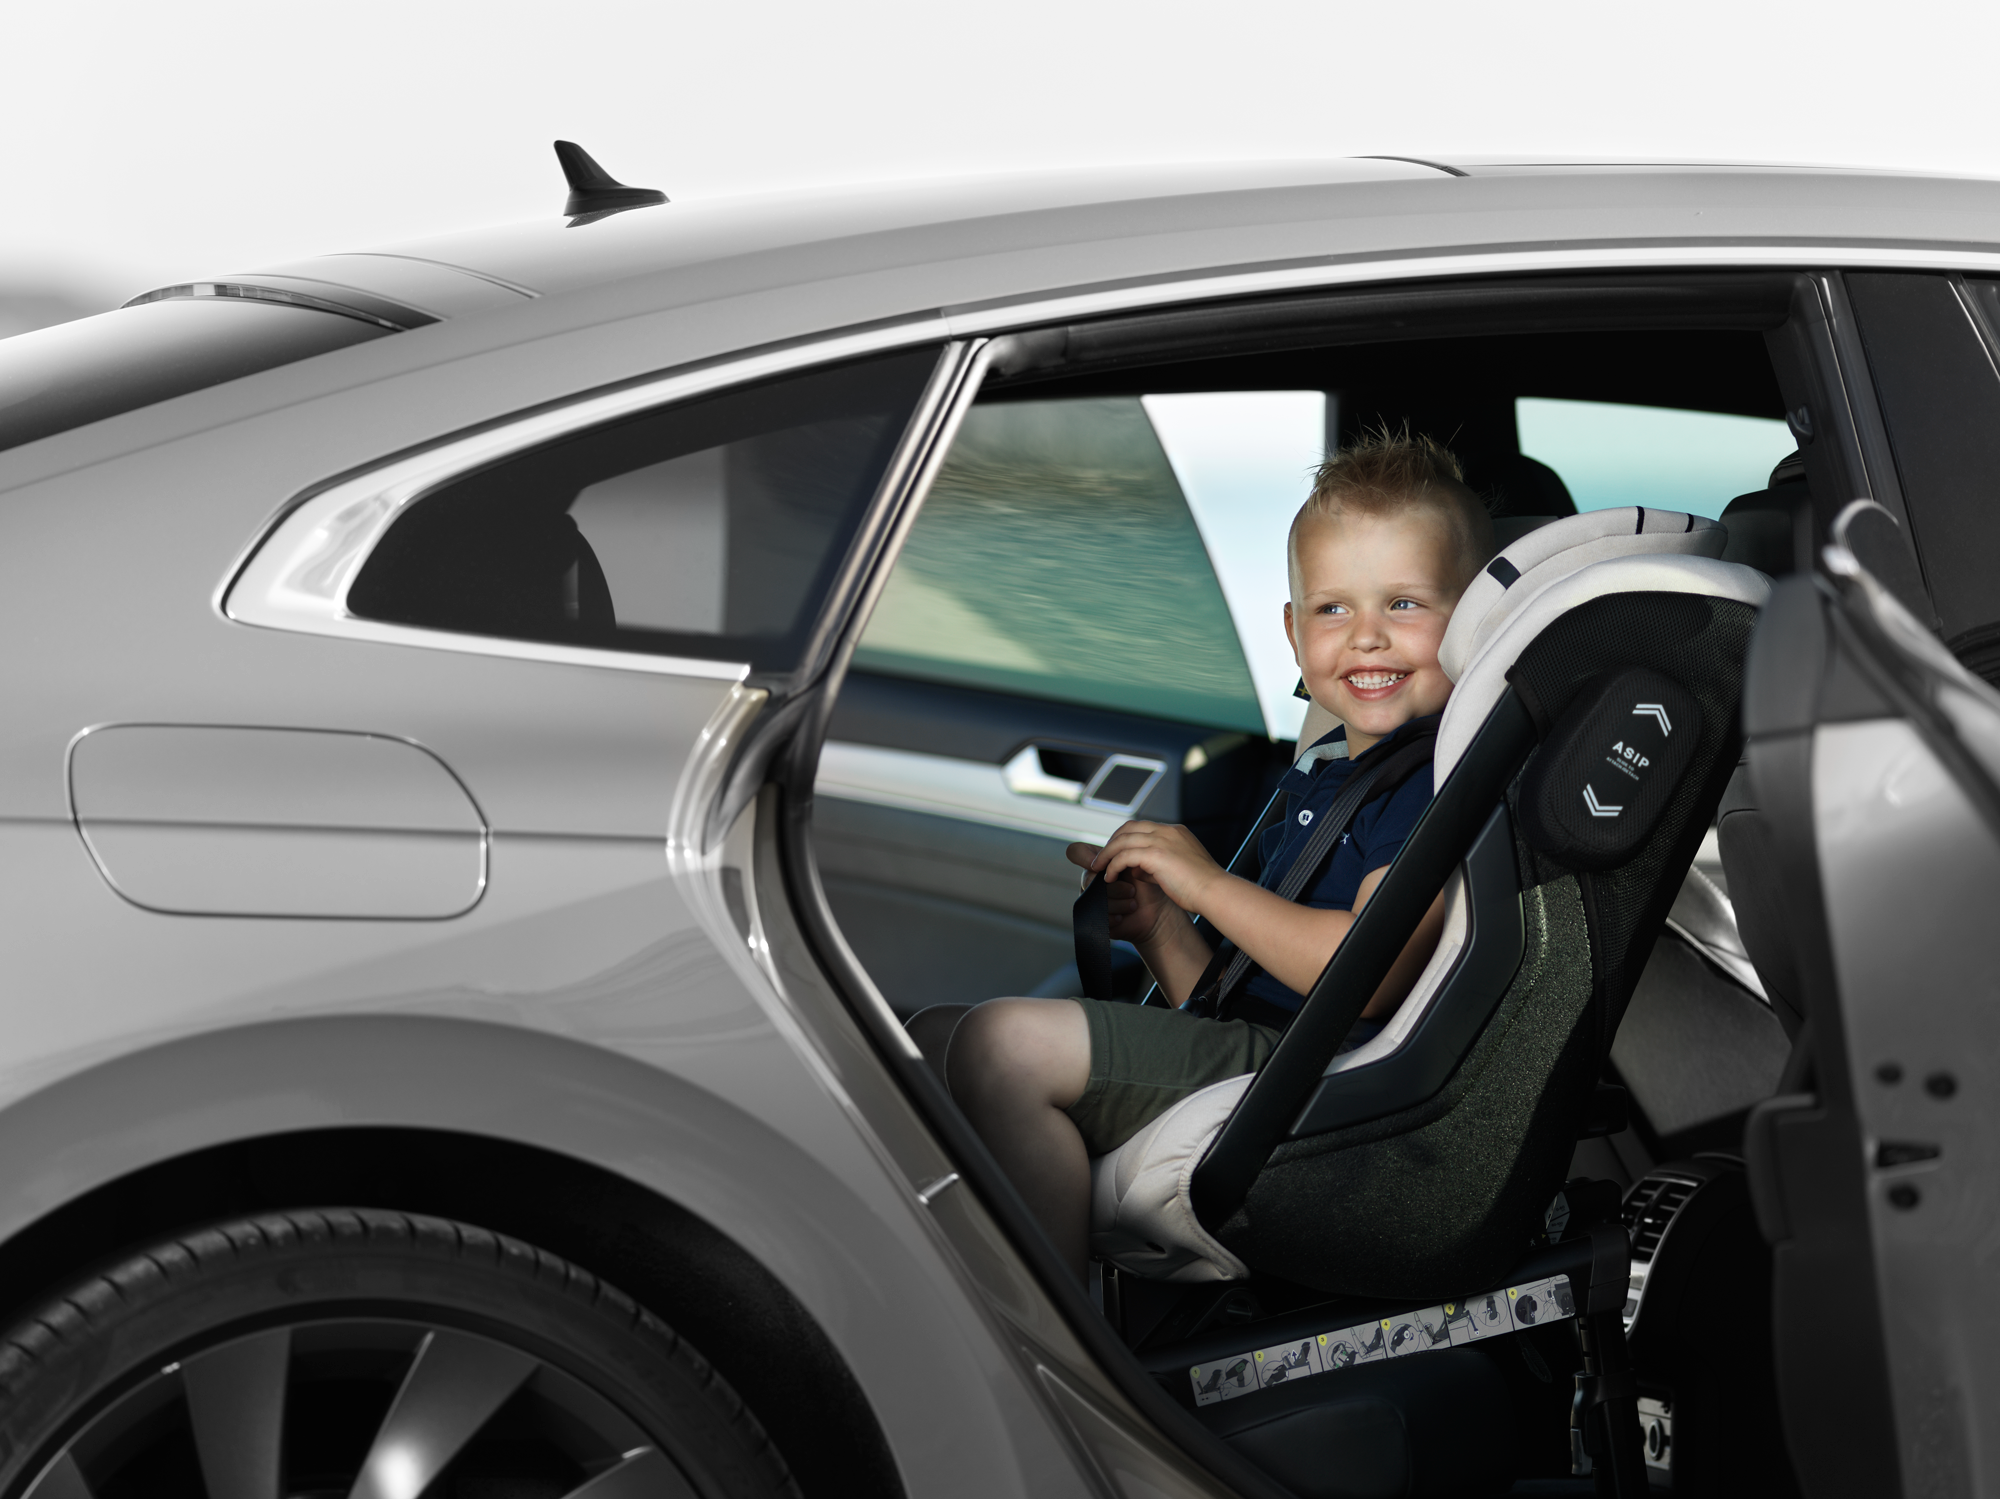 Axkid Seats - Why are they so safe?